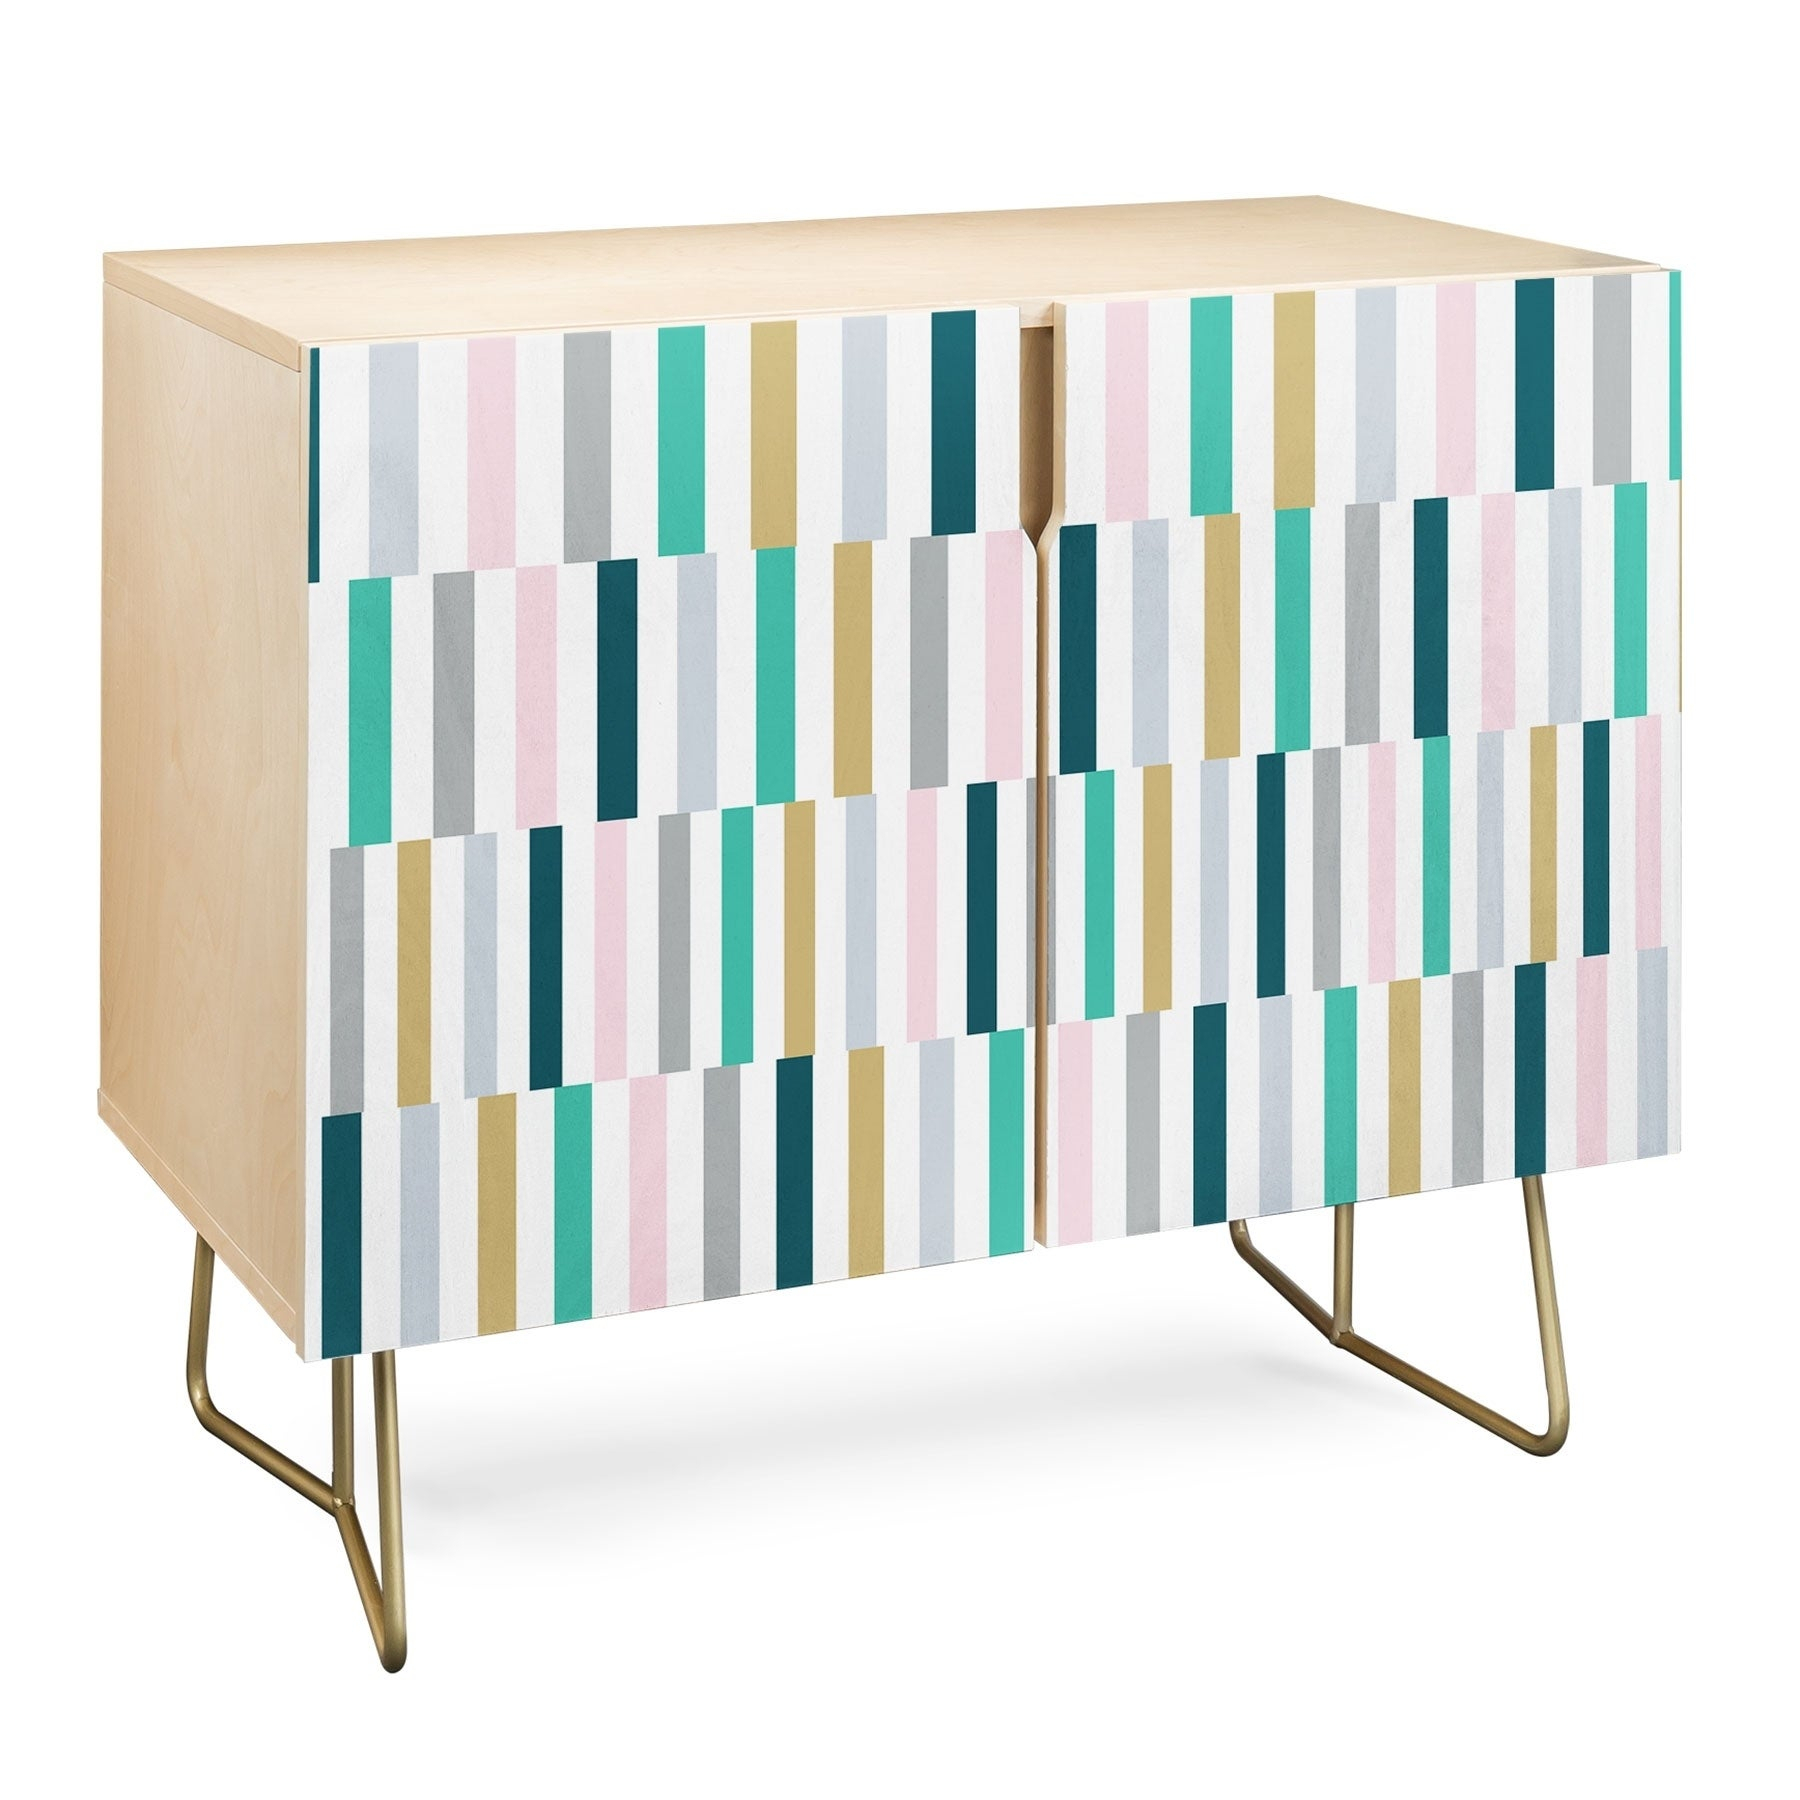 Deny Designs Scandi Stripes Credenza (Birch Or Walnut, 2 Leg Options) intended for Multi Stripe Credenzas (Image 9 of 30)